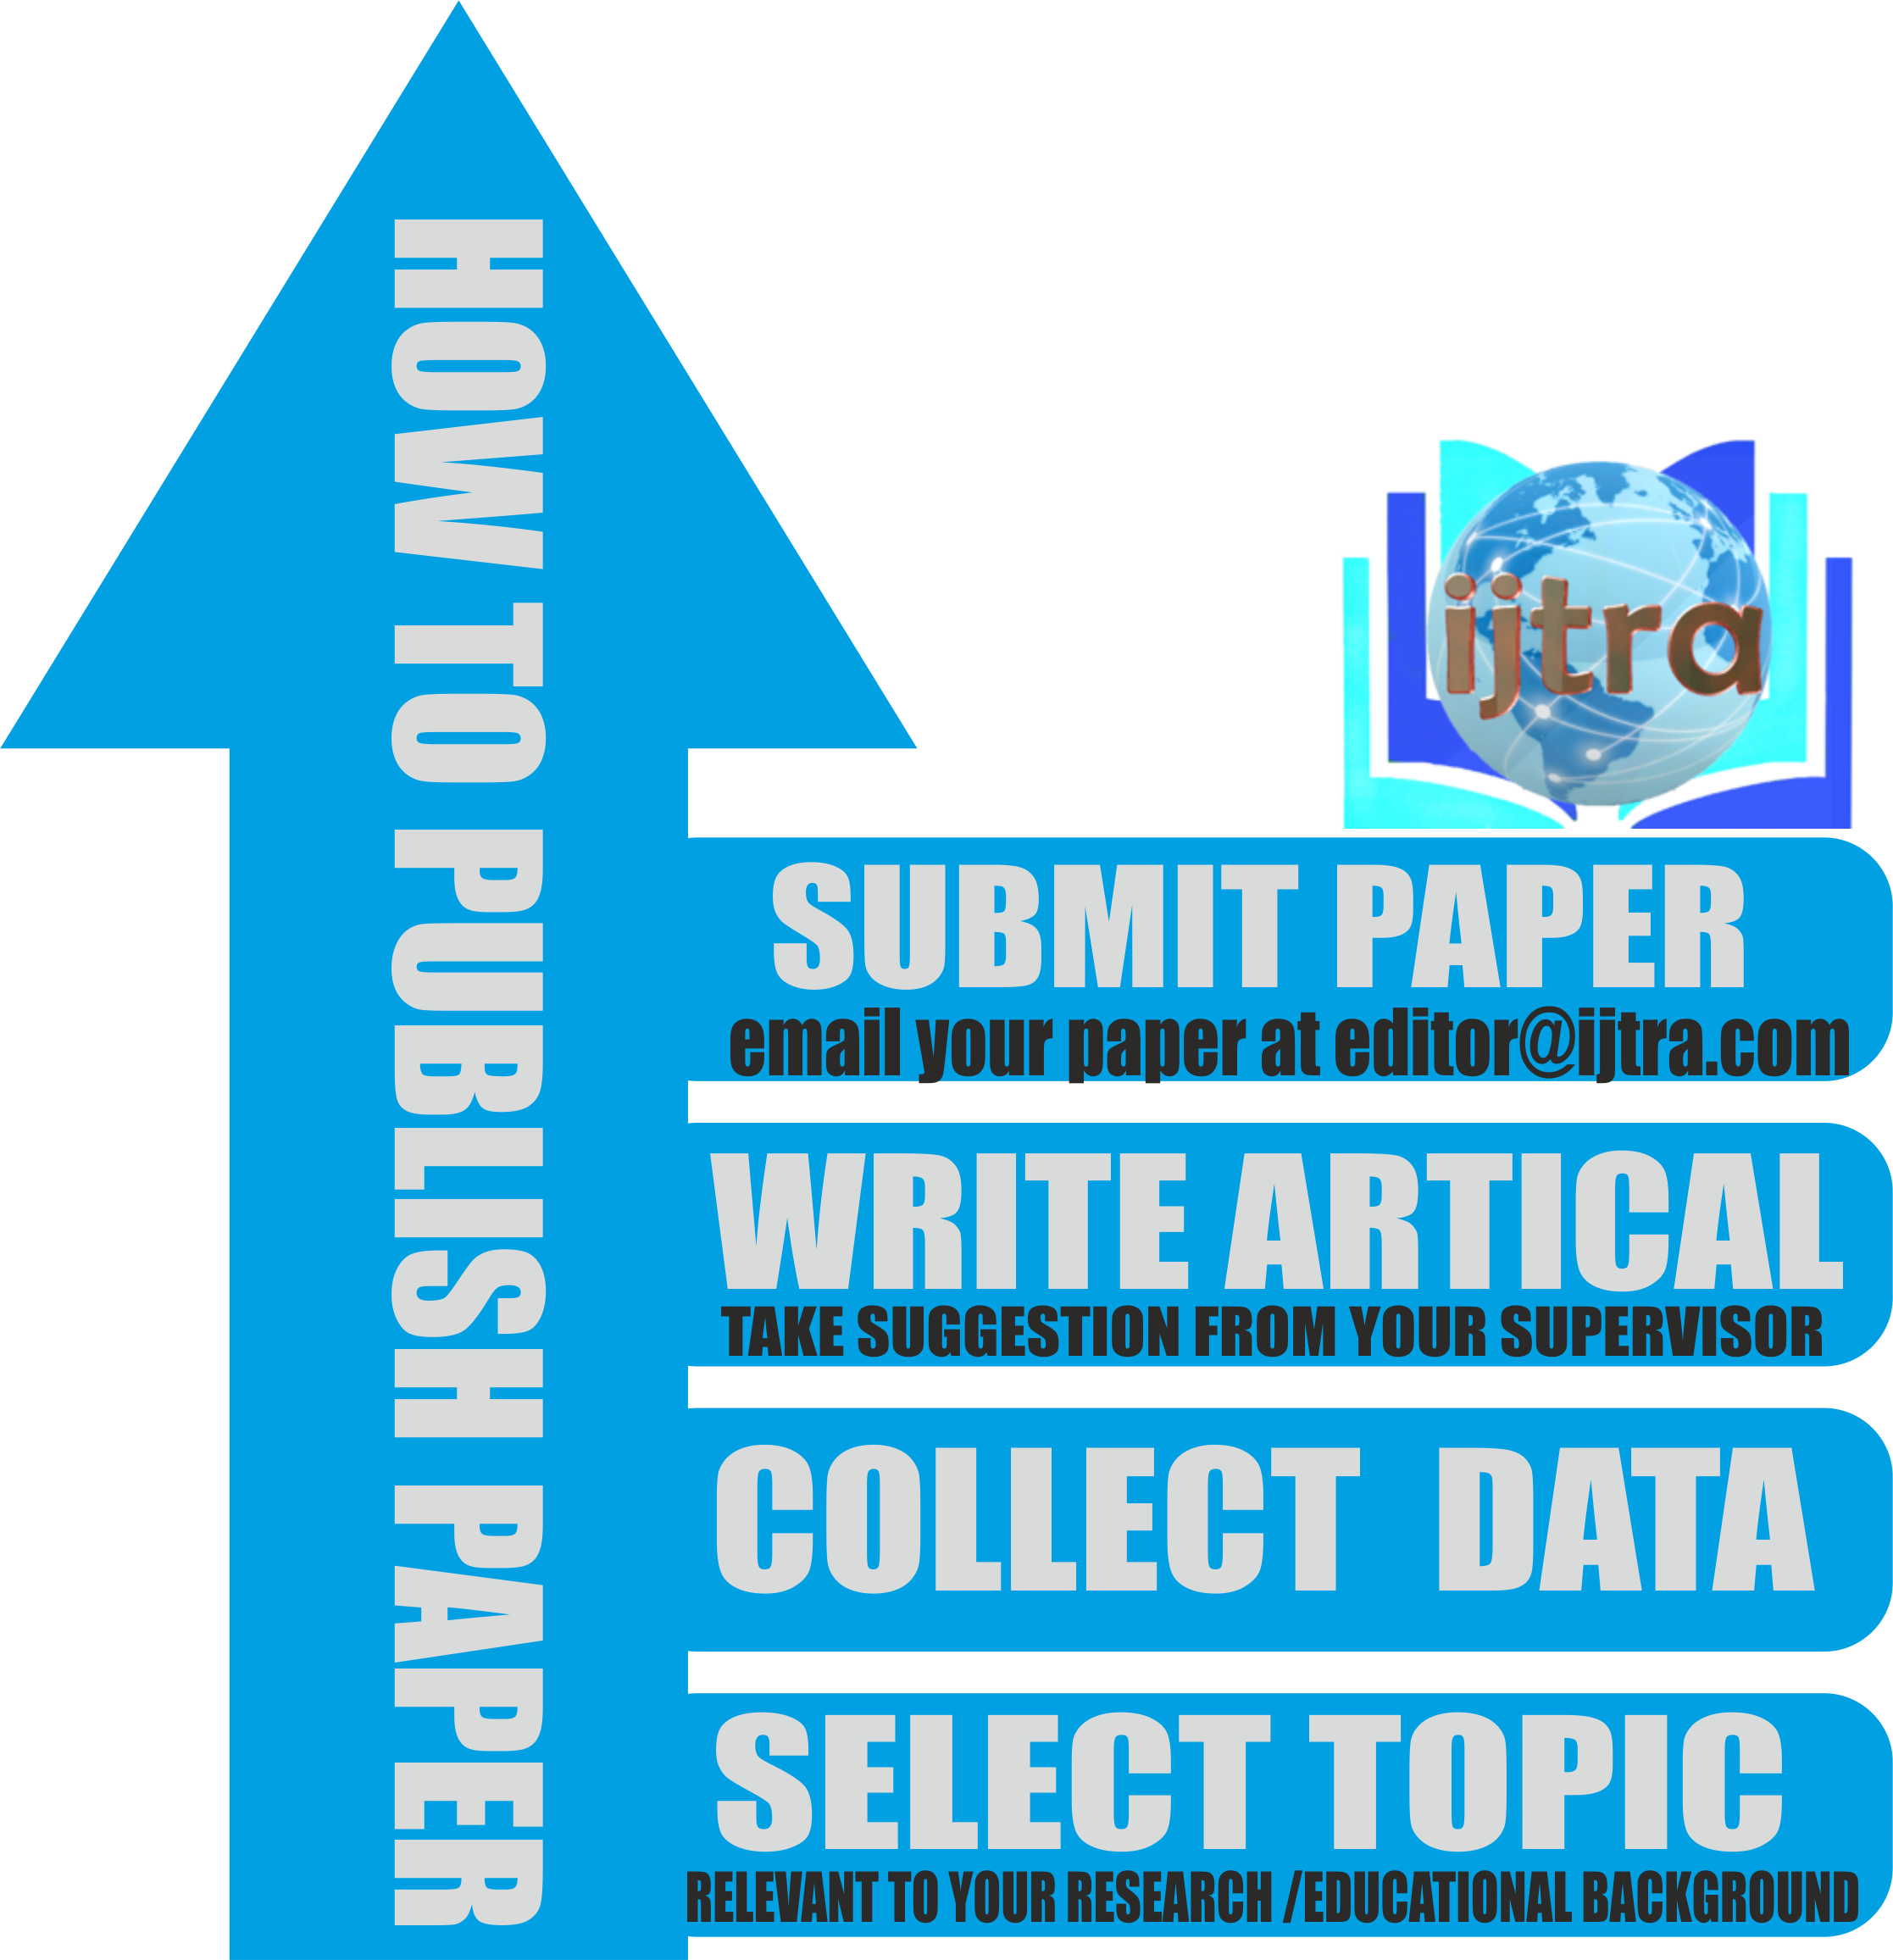 023 Ijtra Author Ins Research Paper Breathtaking Editor Software Free Editorial Full